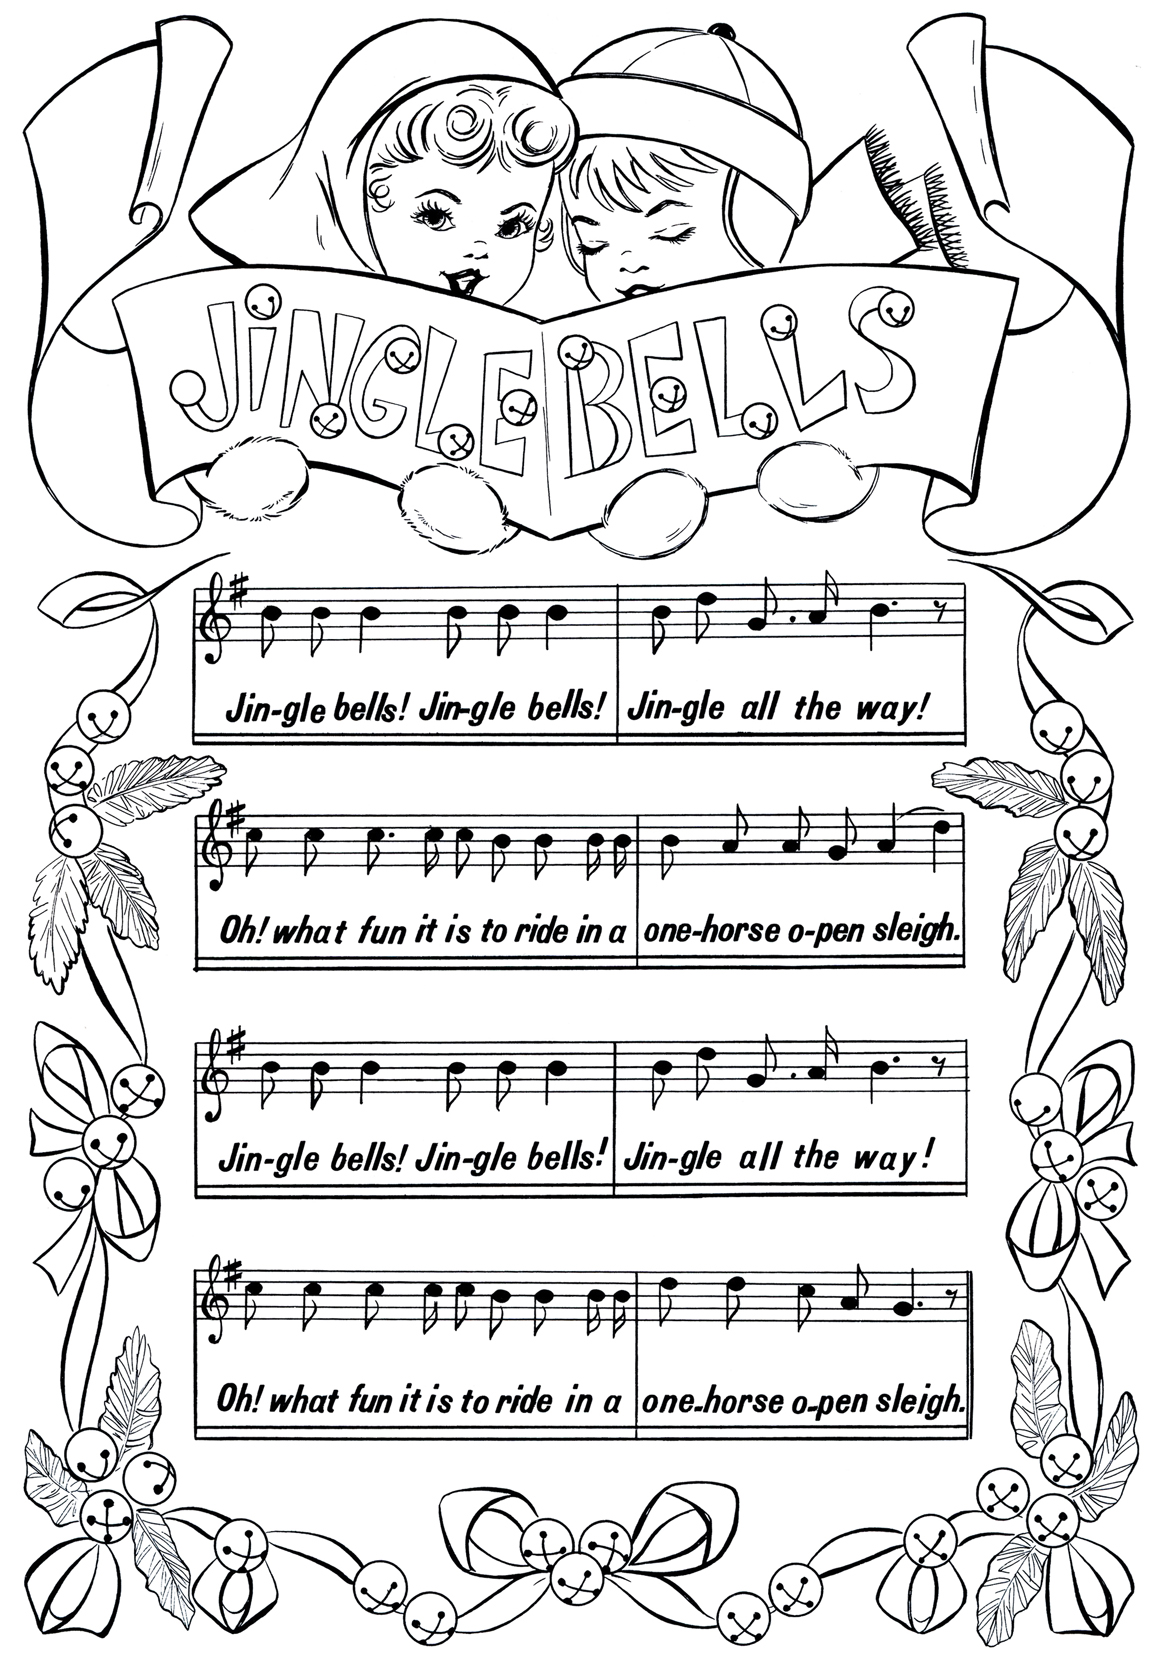 Jingle Bells Sheet Music Graphicsfairy